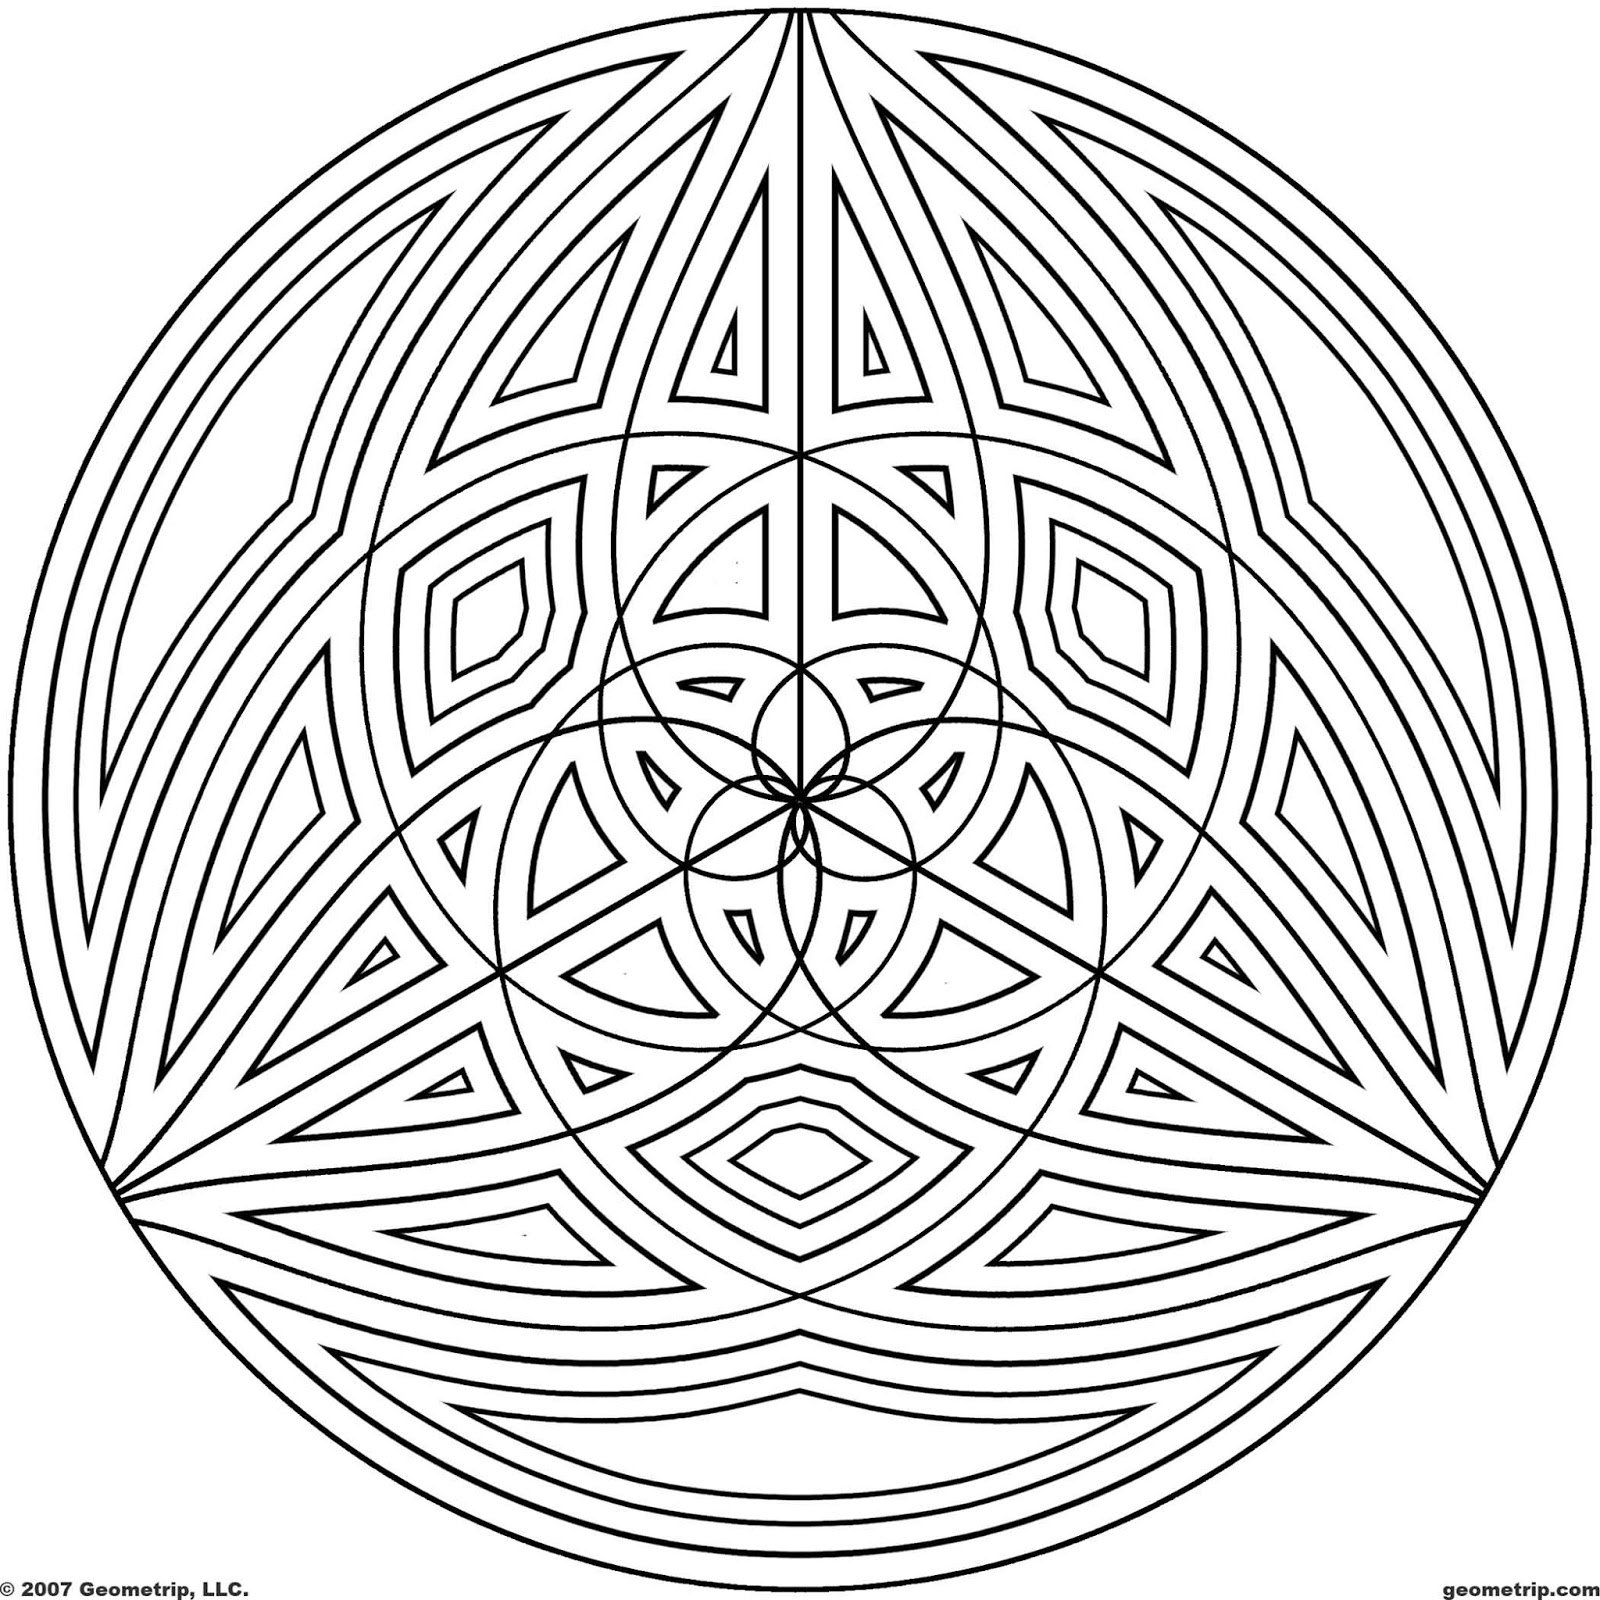 pattern coloring pages to print - photo#15